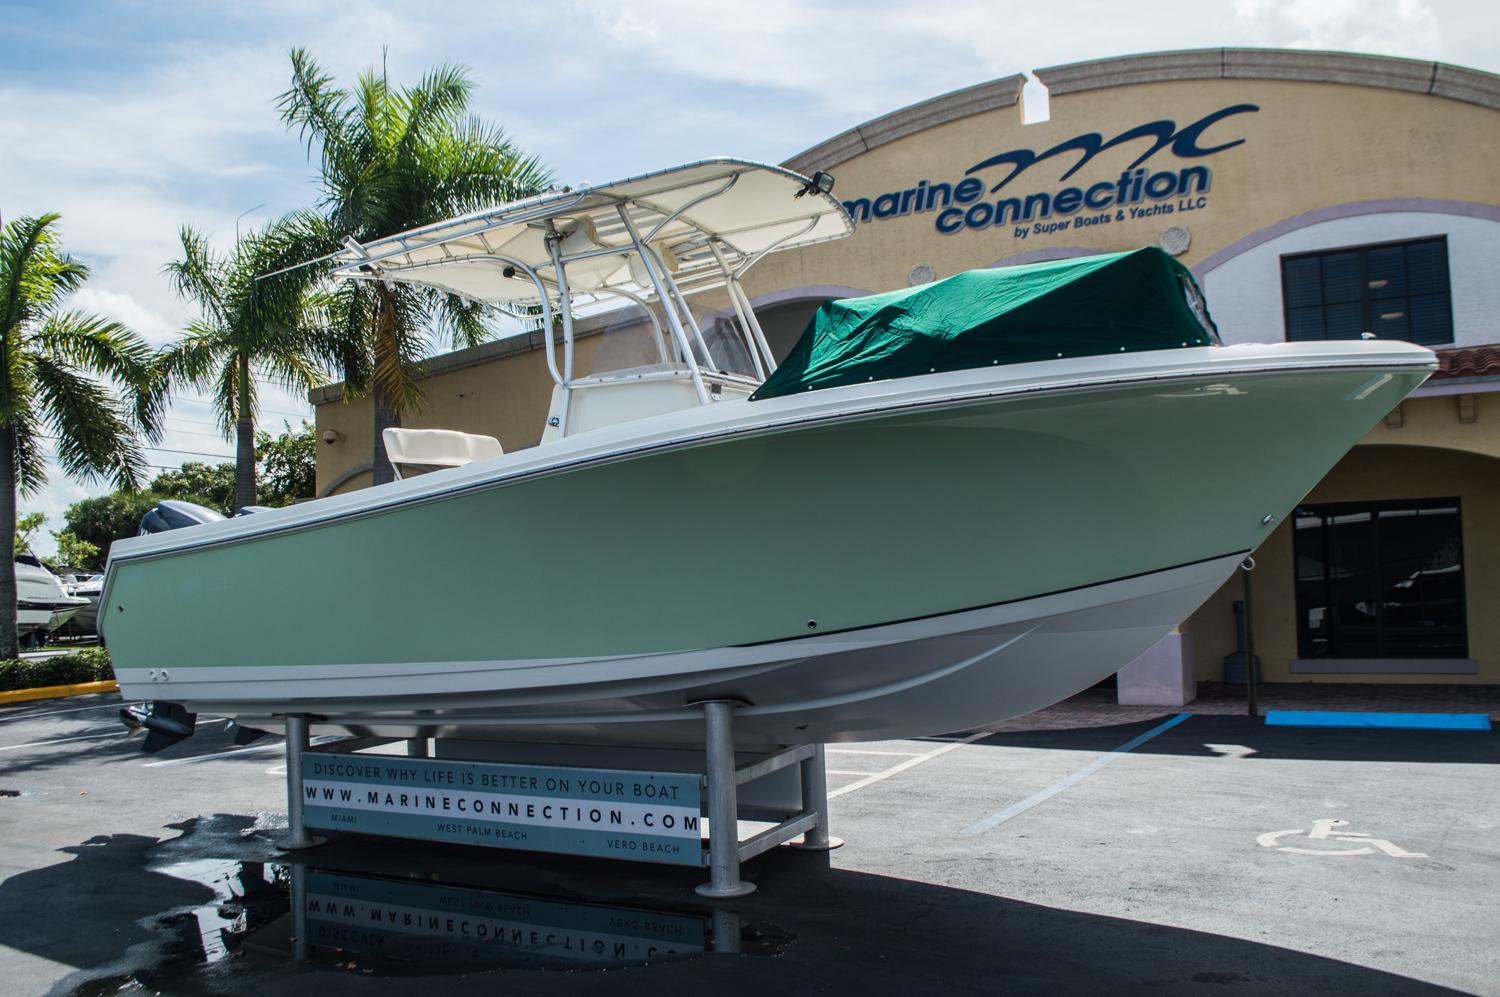 Thumbnail 9 for Used 2006 Sailfish 2360 CC Center Console boat for sale in West Palm Beach, FL